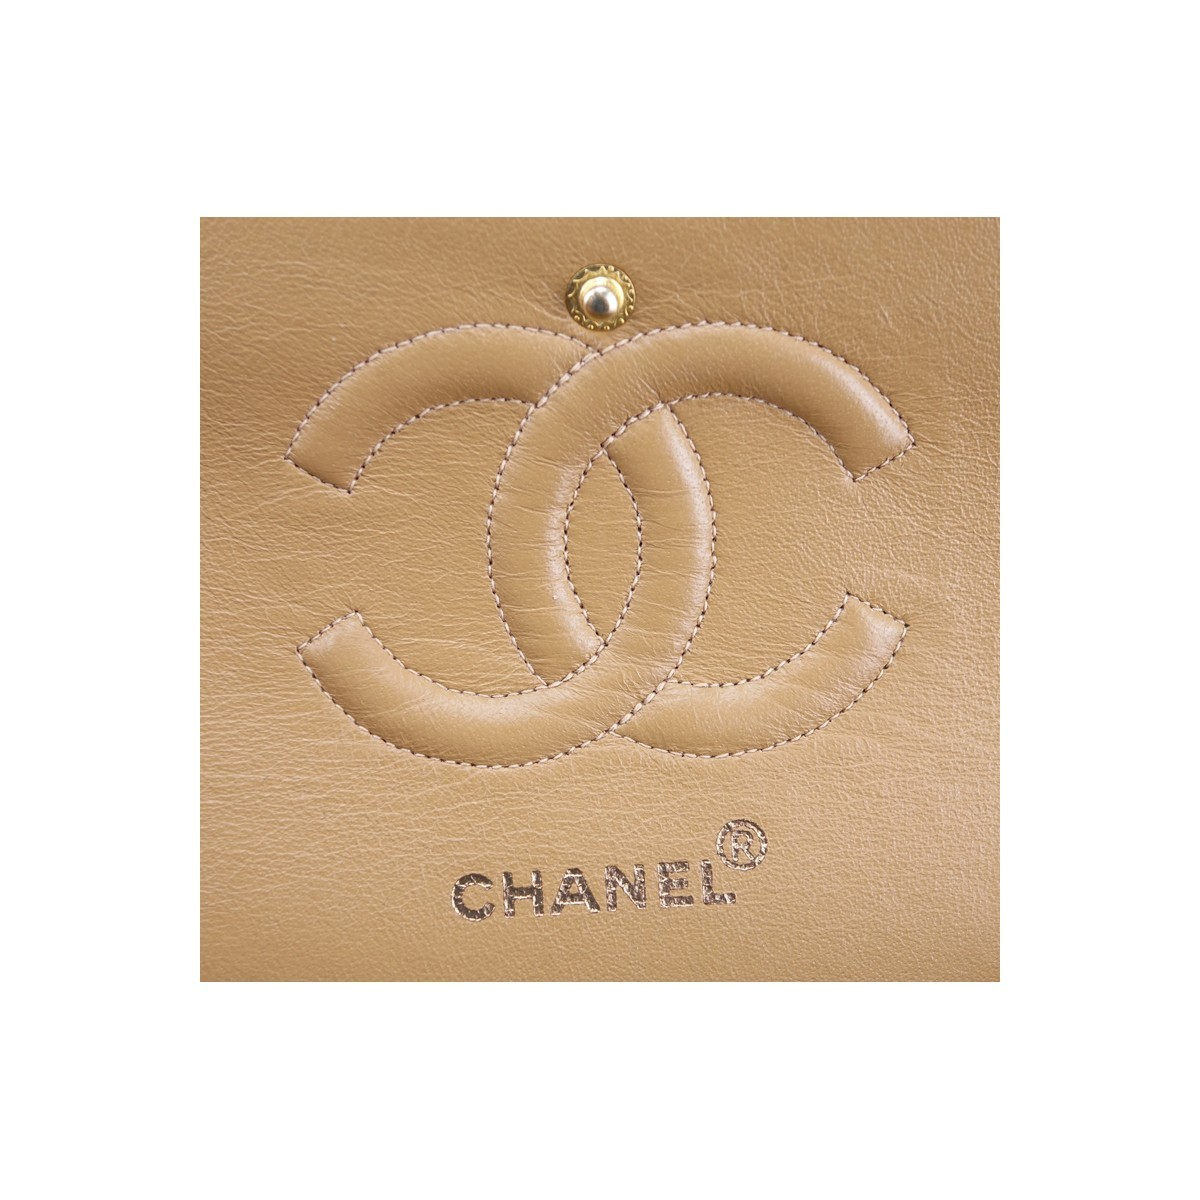 Chanel Dark Beige Quilted Leather Classic Double Flap 26 Handbag. Gold tone hardware, matching leather interior with patch and zippered pockets.